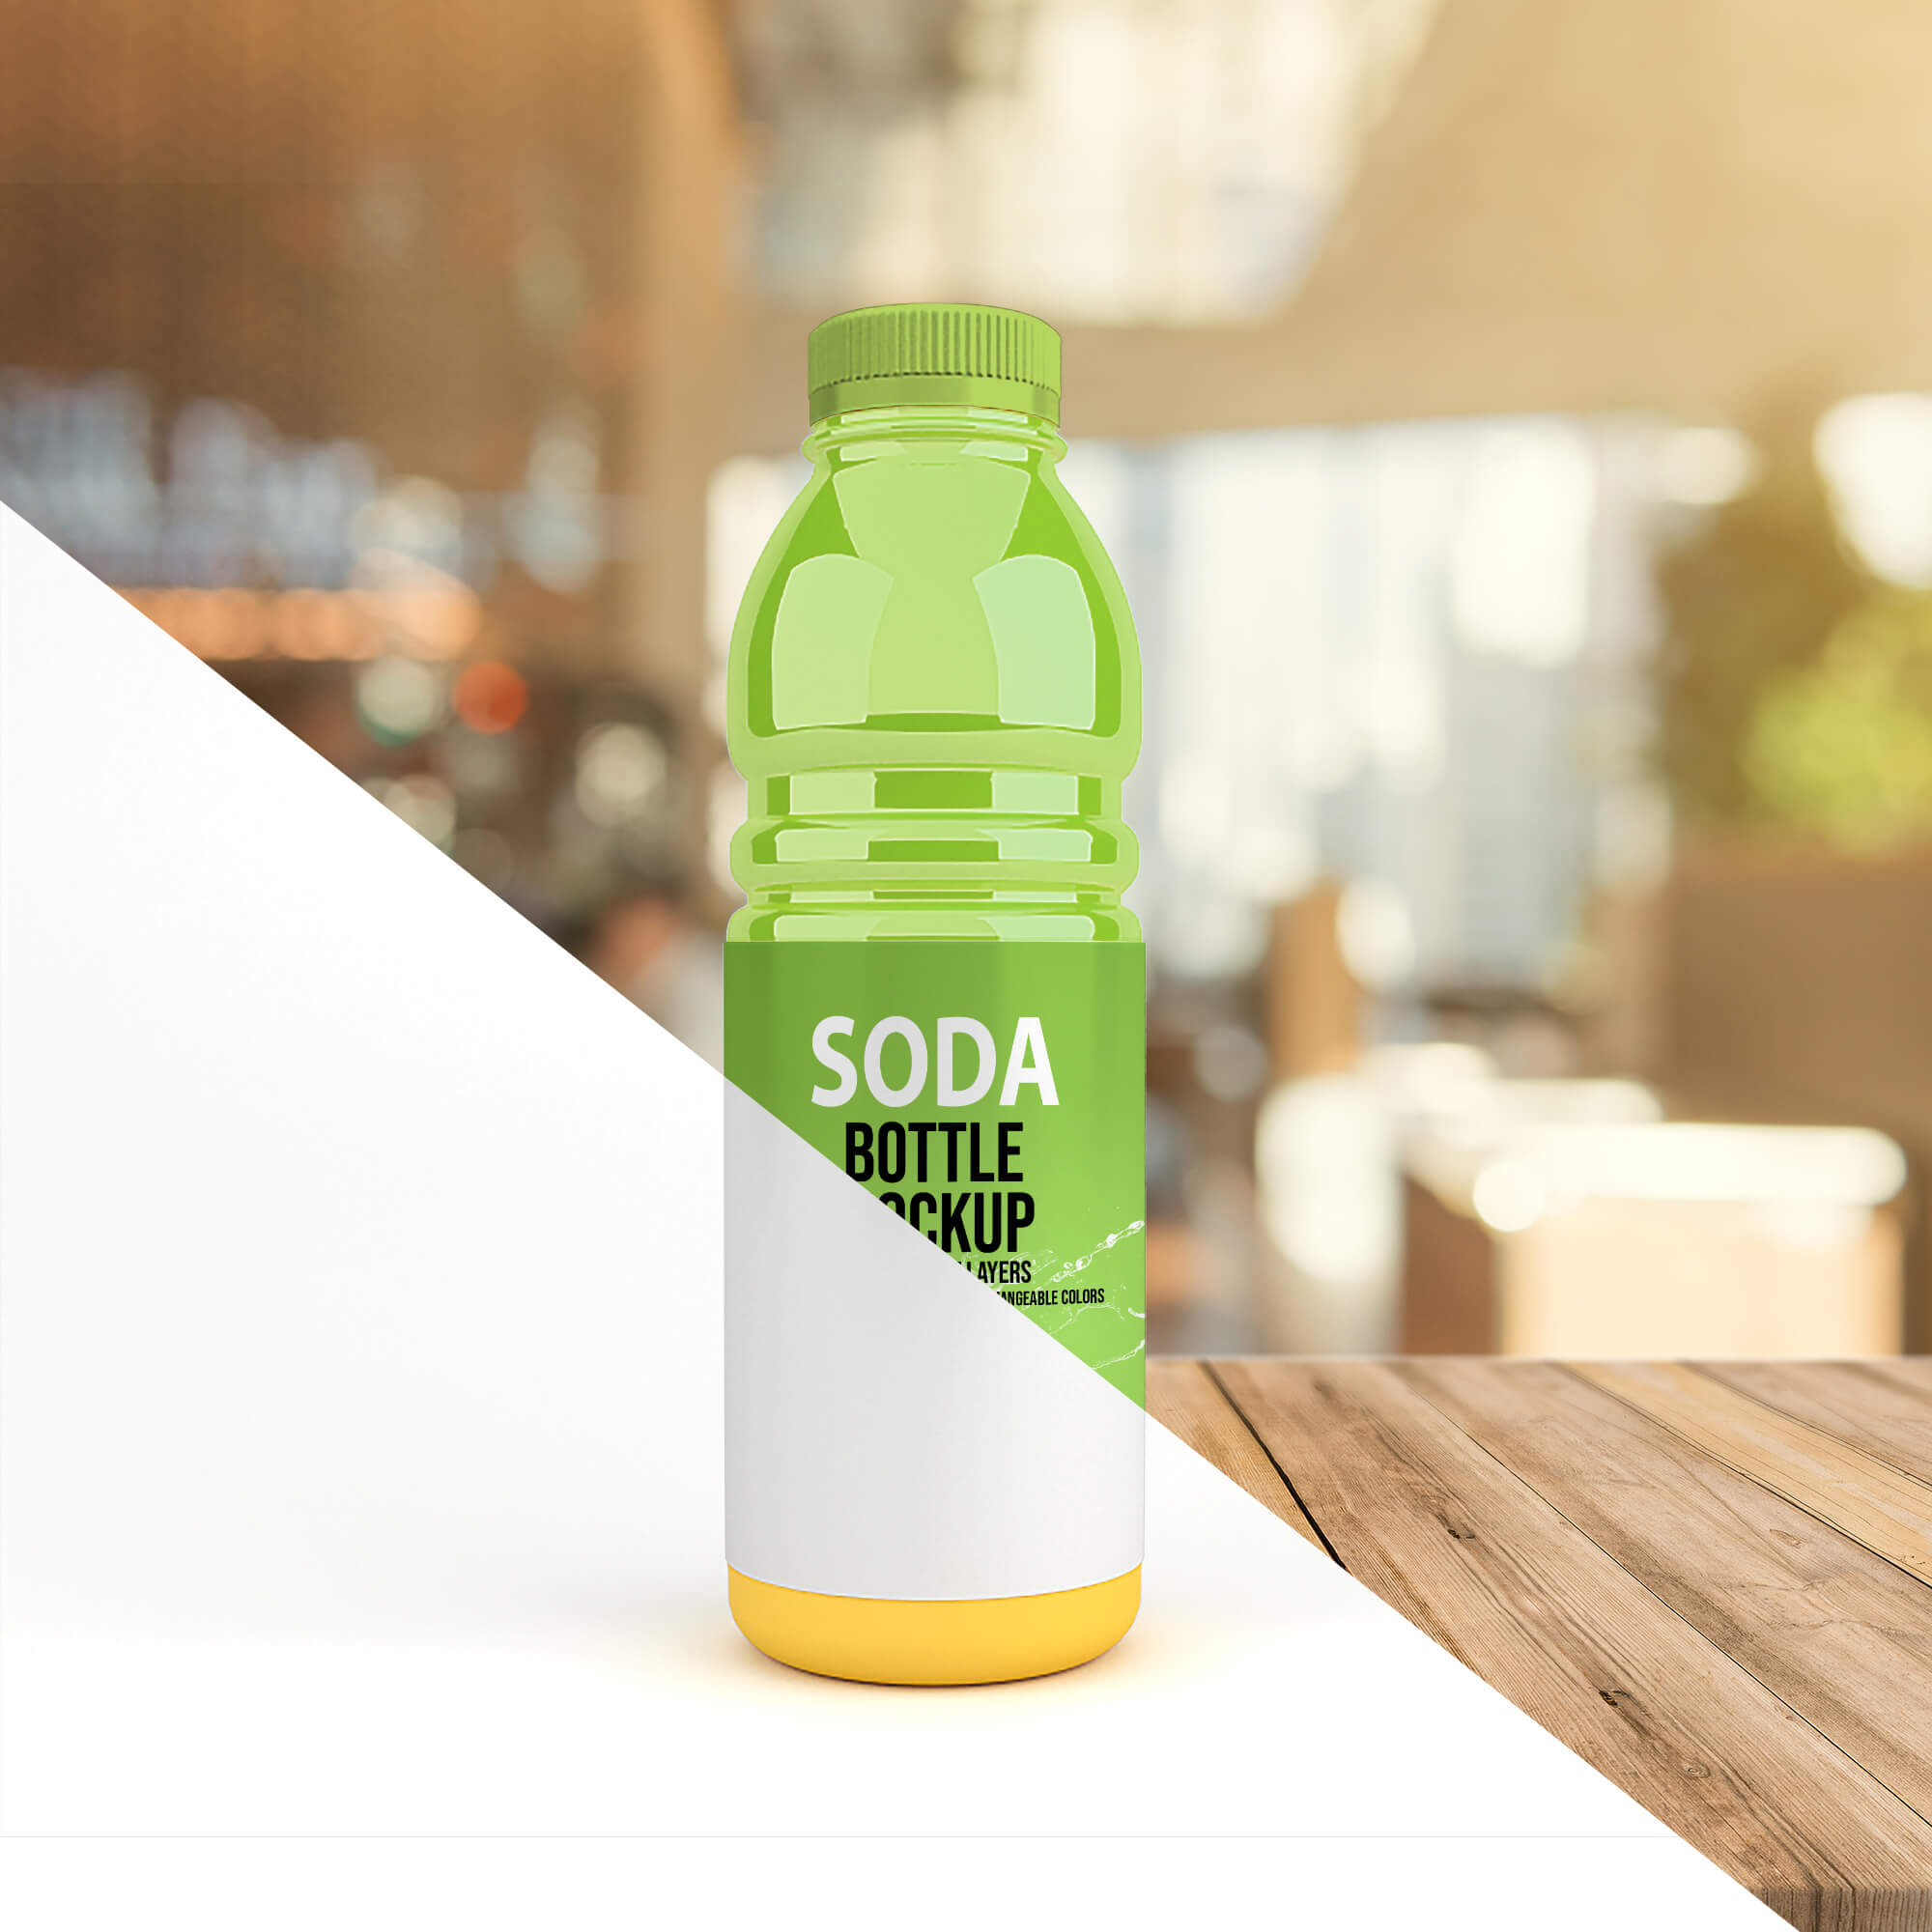 Editable Free Soda Bottle Mockup PSD Template (2)